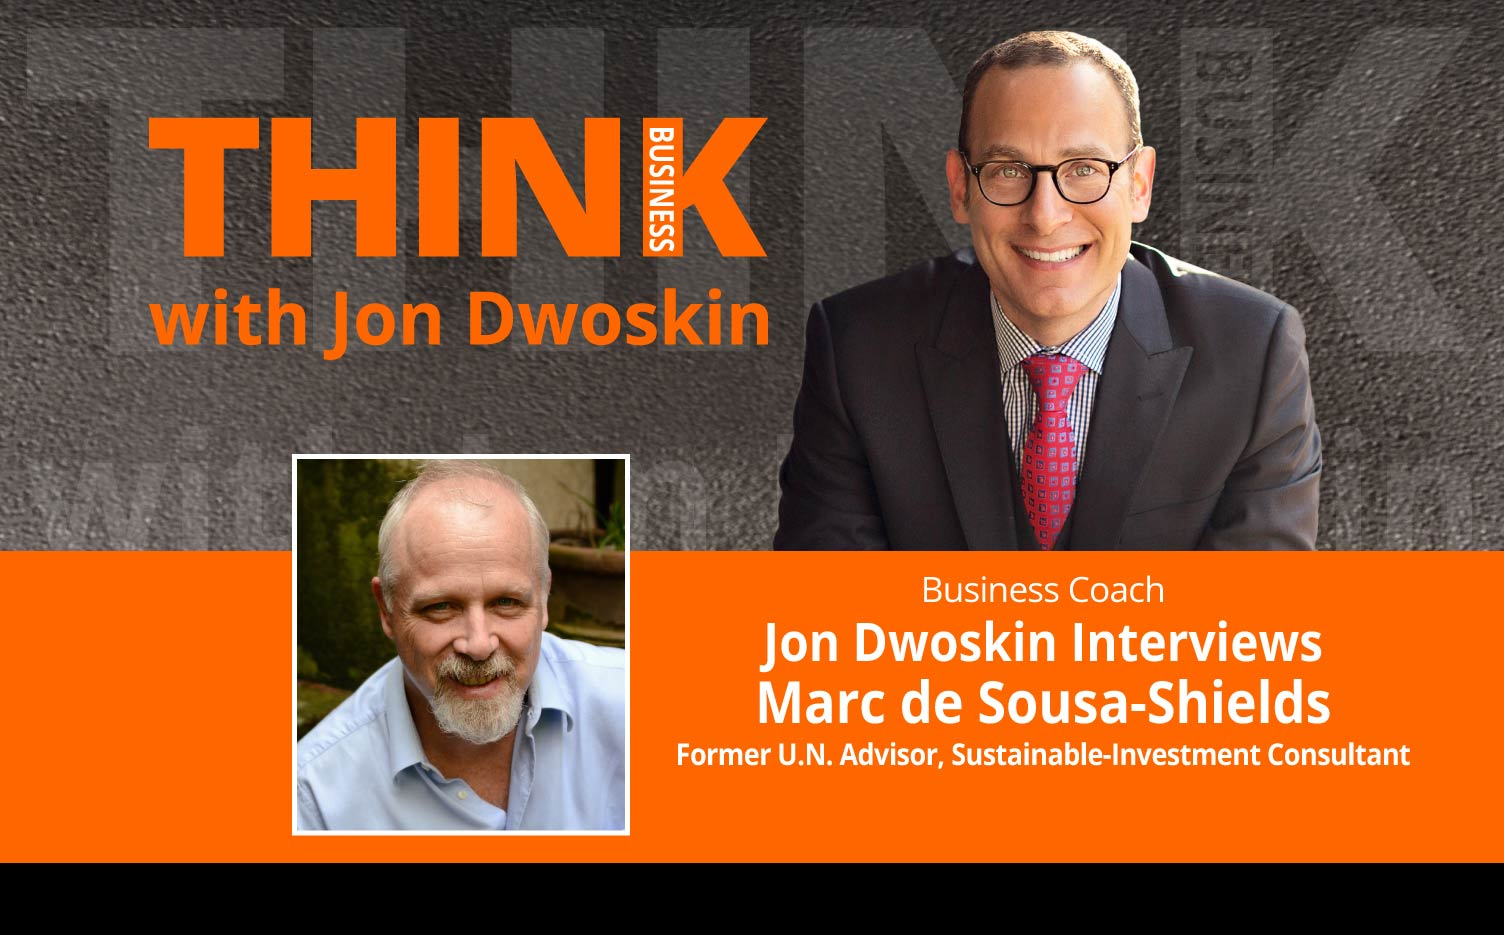 THINK Business Podcast: Jon Dwoskin Interviews Marc de Sousa-Shields, Former U.N. Advisor, Sustainable-Investment Consultant